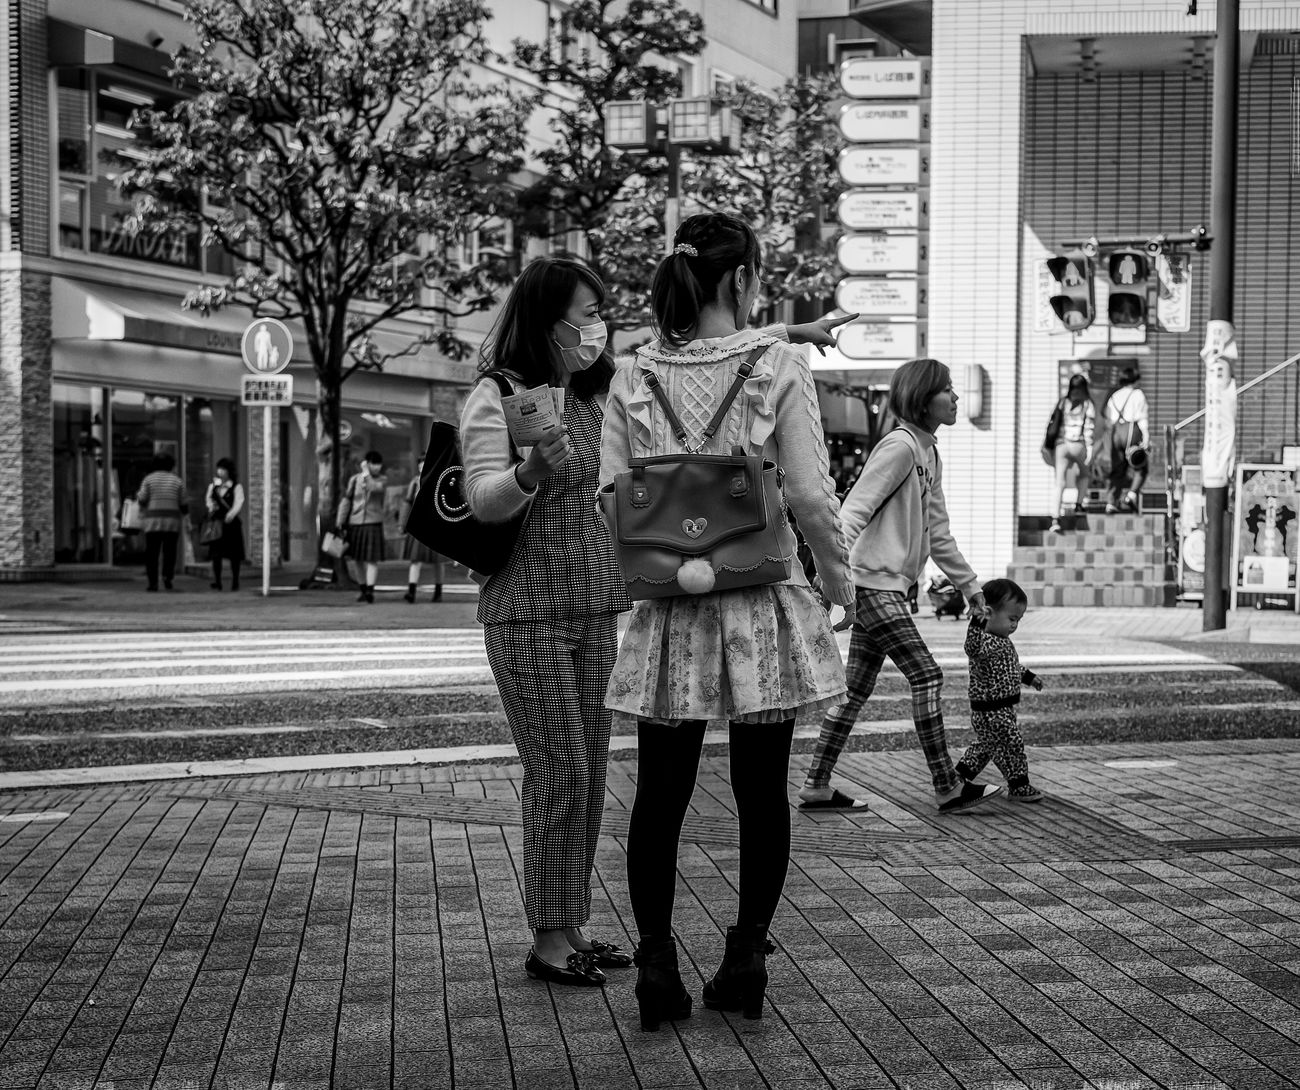 Going Straight Japan Japanese  Japanphotography ASIA Street Streetphoto_bw Streetfashion Streetstyle Streetphotography Blackandwhite Monochrome Fashion Style Urban City People Candid Bag FujifilmXPro2 Xf35mmf2 Fujiusers Cooljapan